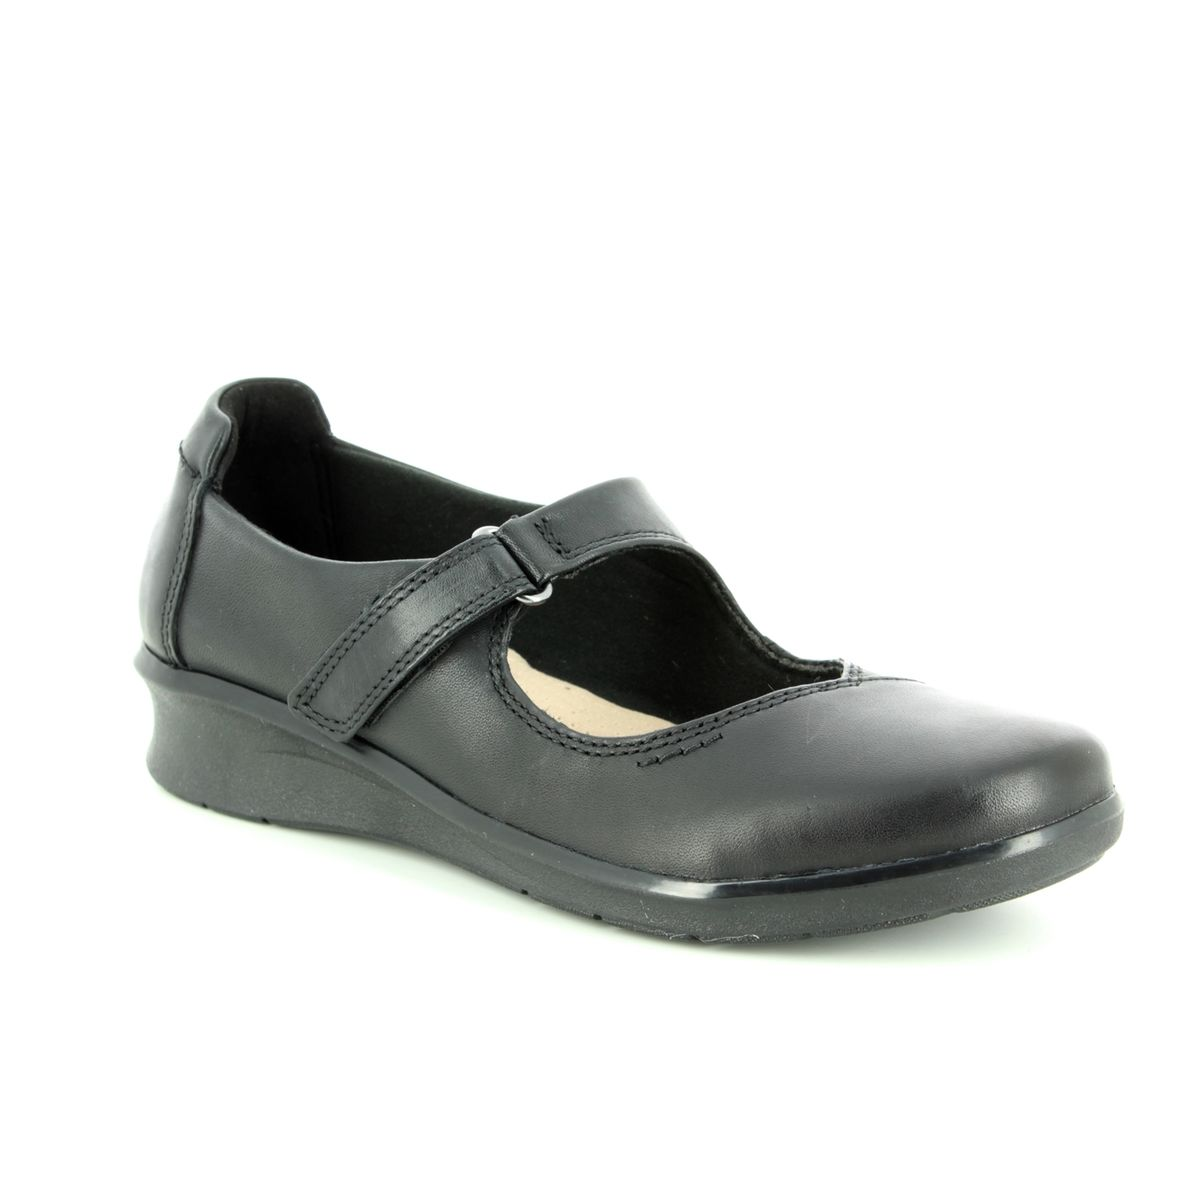 Clarks Mary Jane Shoes - Black leather - 3718 54D HOPE HENLEY 7cd8298b74c2